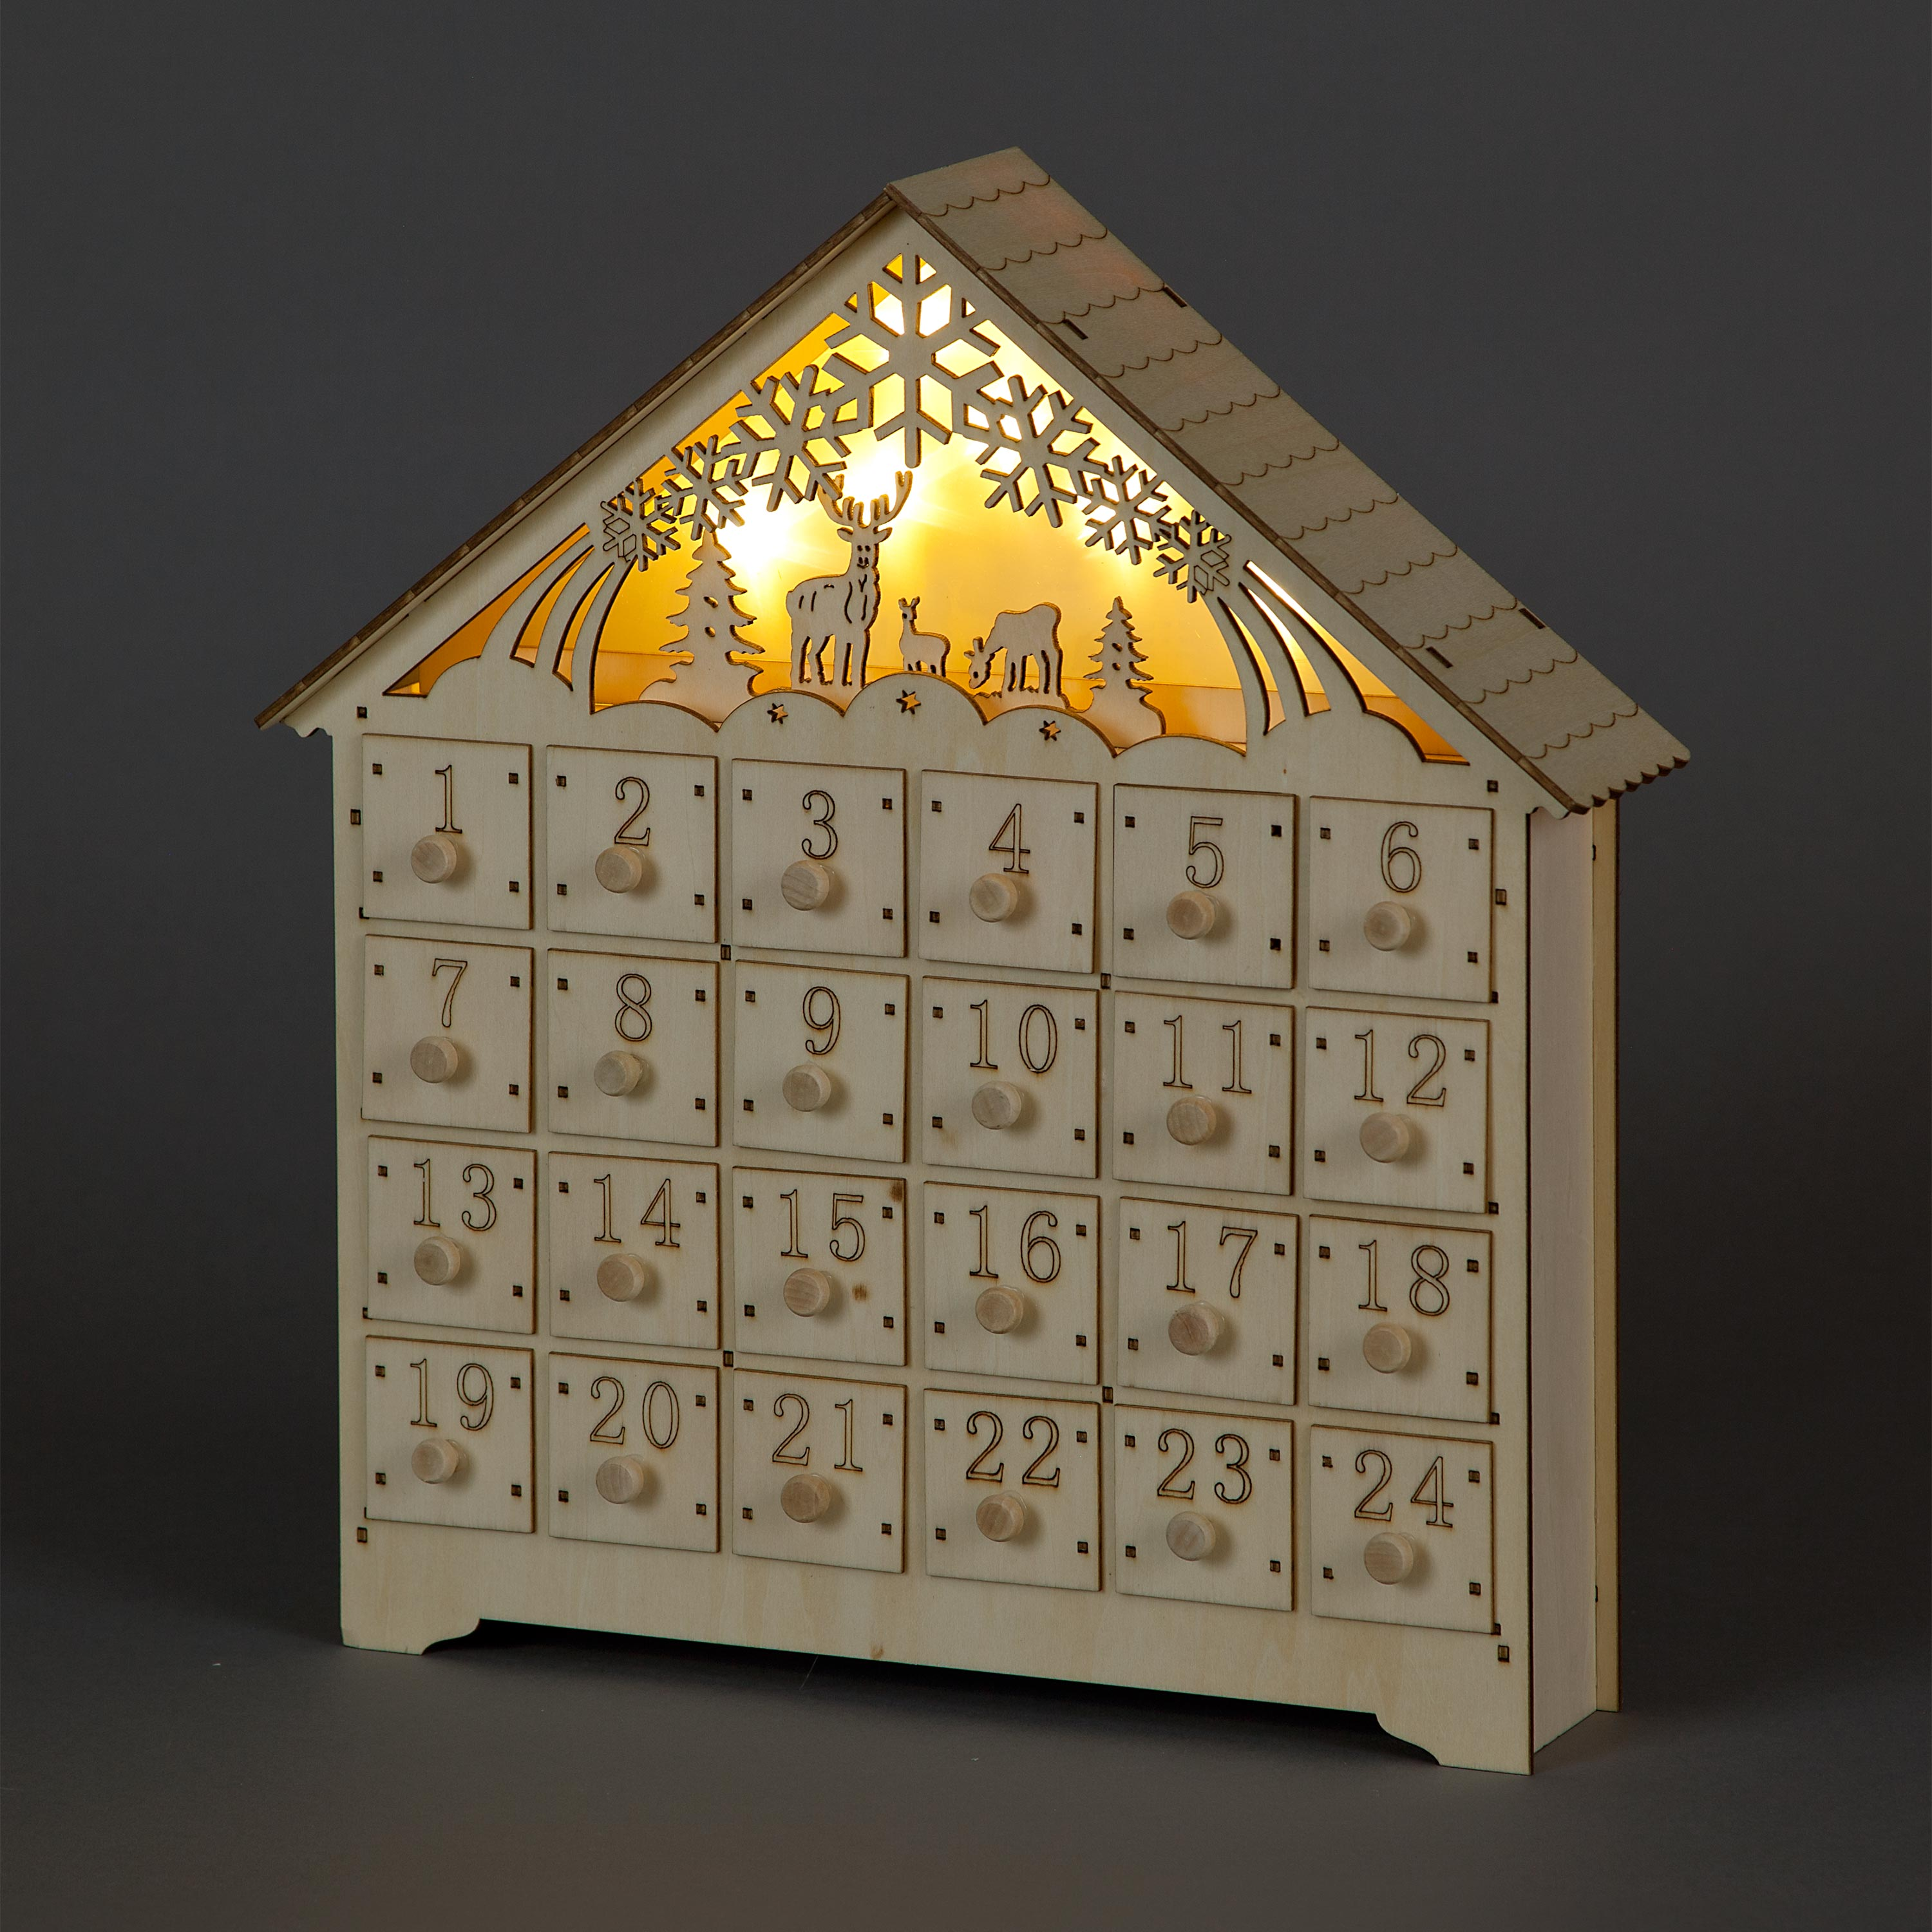 Hand-Carved Wooden Advent Calendar with Illuminated Christmas Scenery